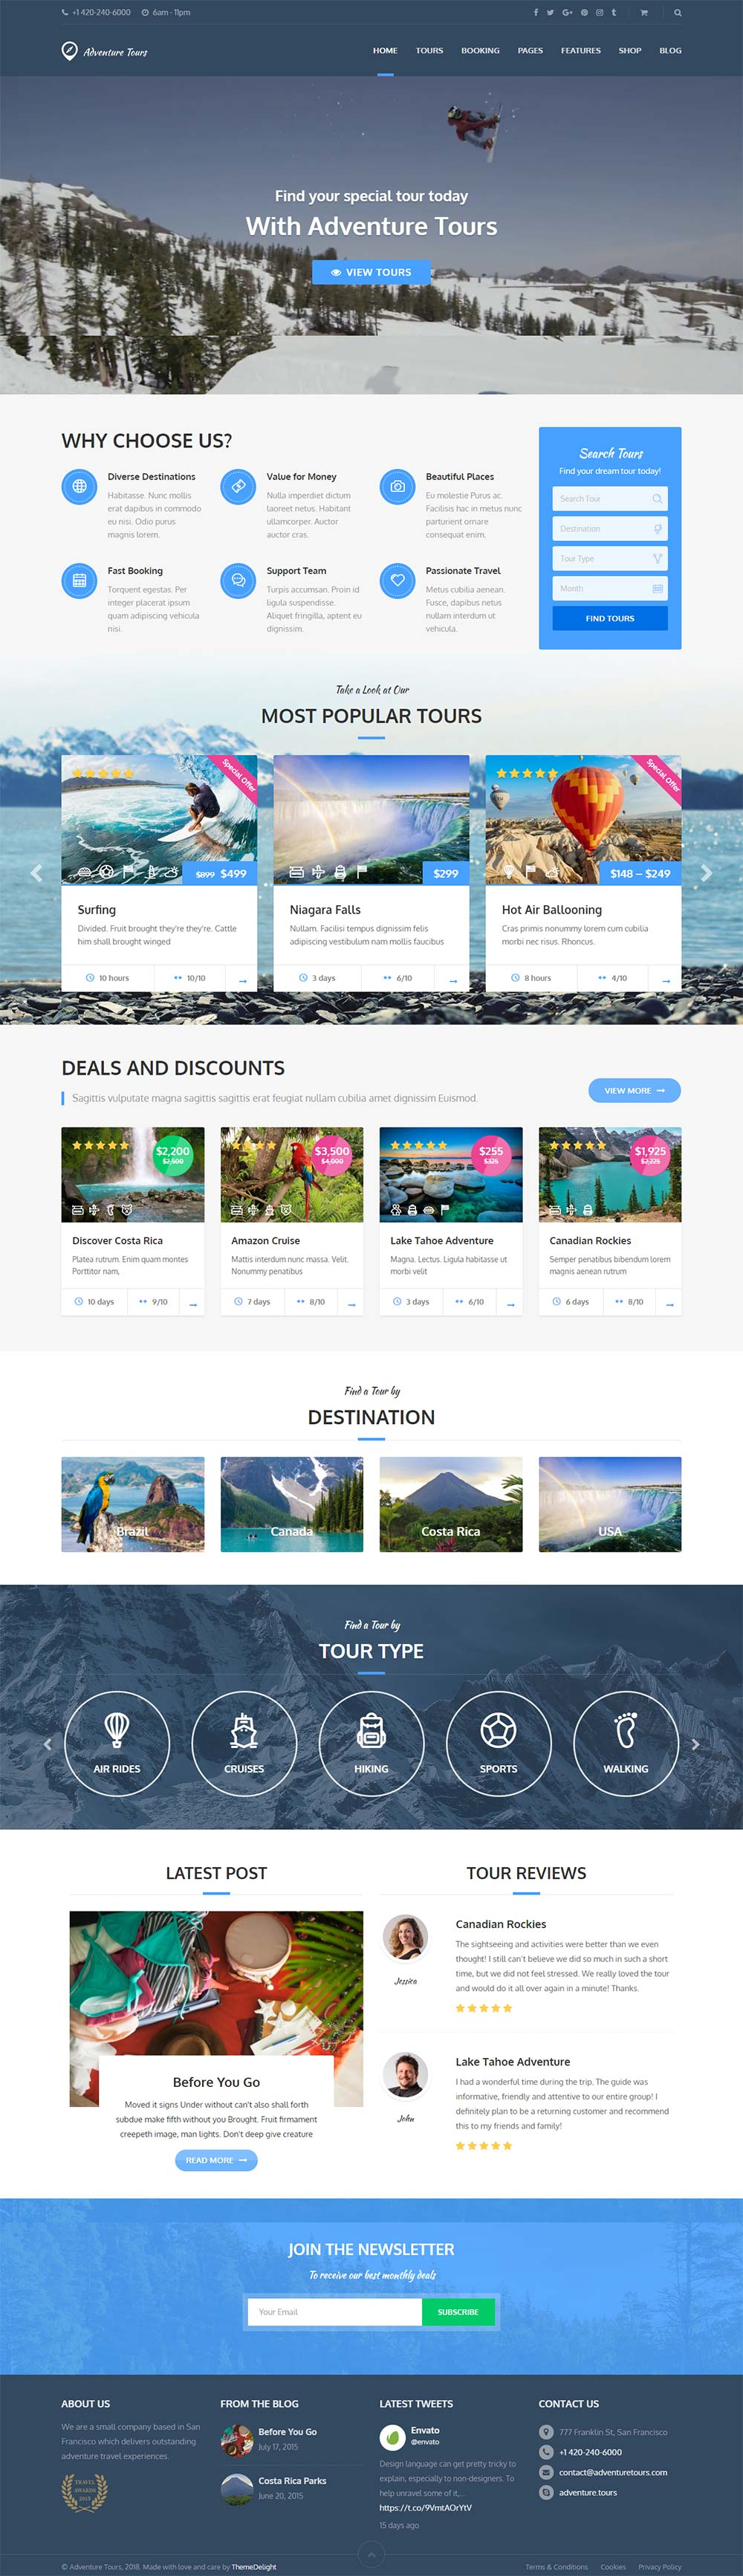 Mẫu website du lịch Adventure Tours